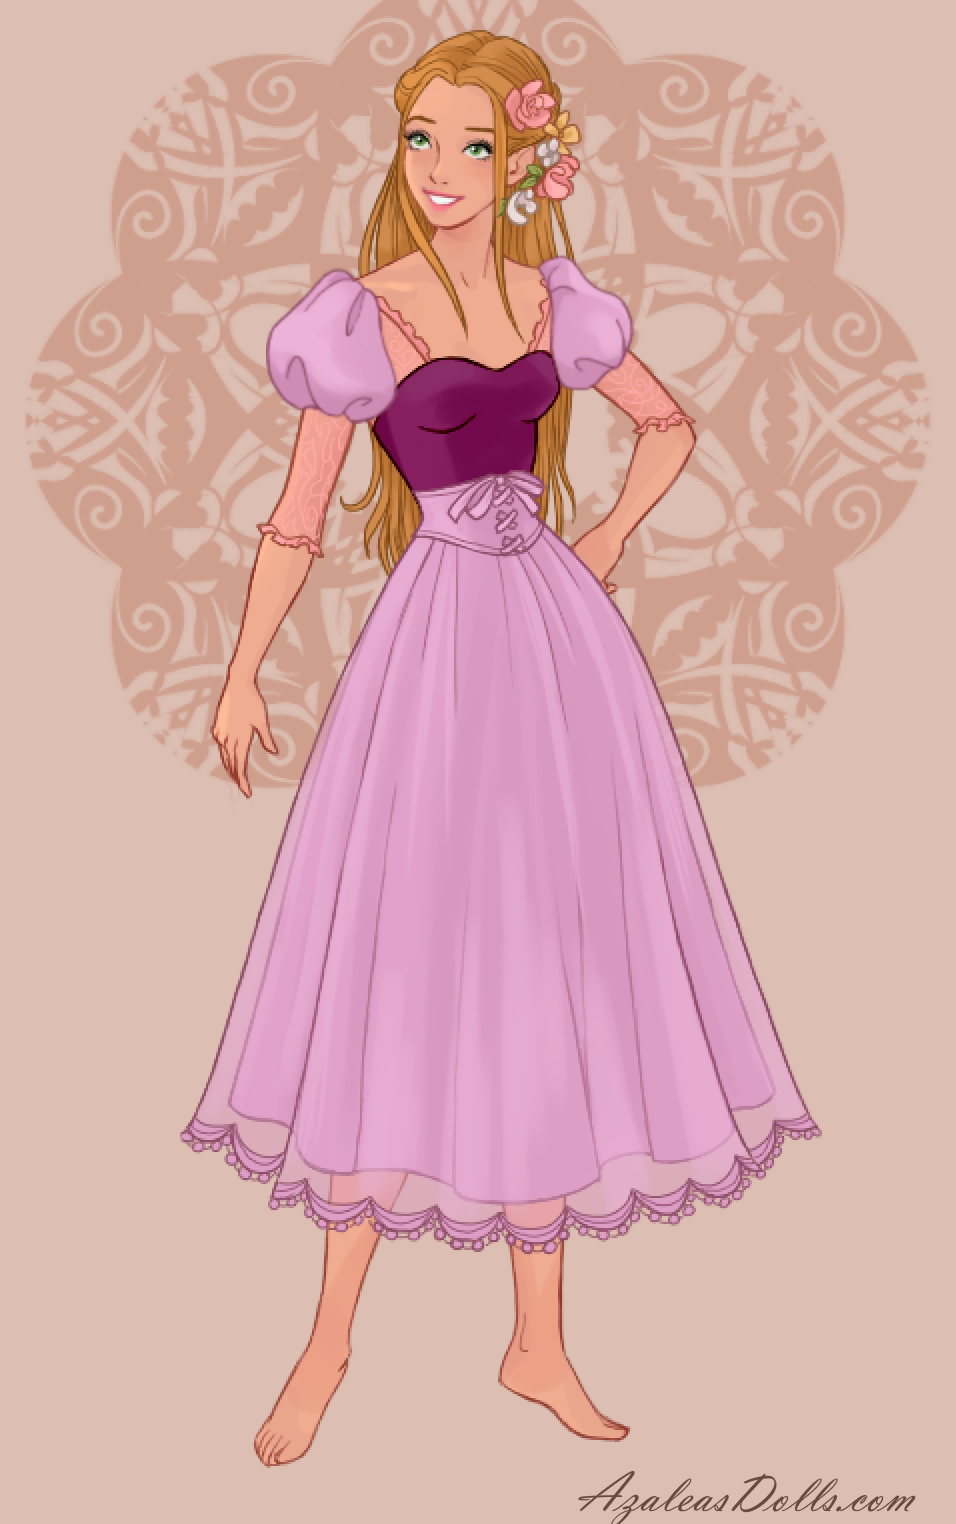 Rapunzel In Wedding Dress Design Dress Up Game Designer Wedding Dresses Rapunzel Designer Dresses